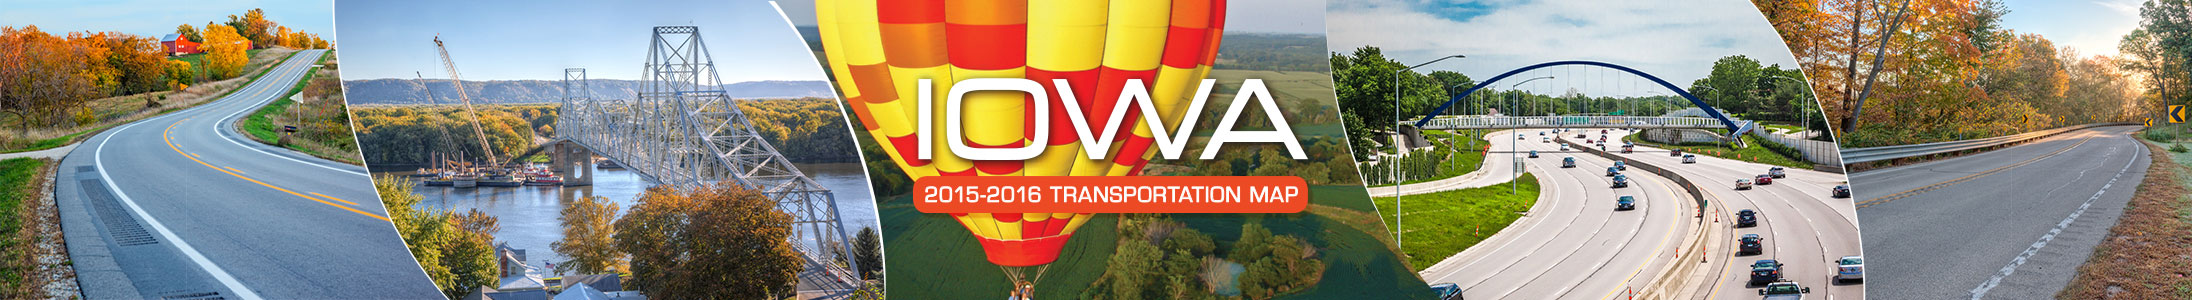 Iowa Transportation Map